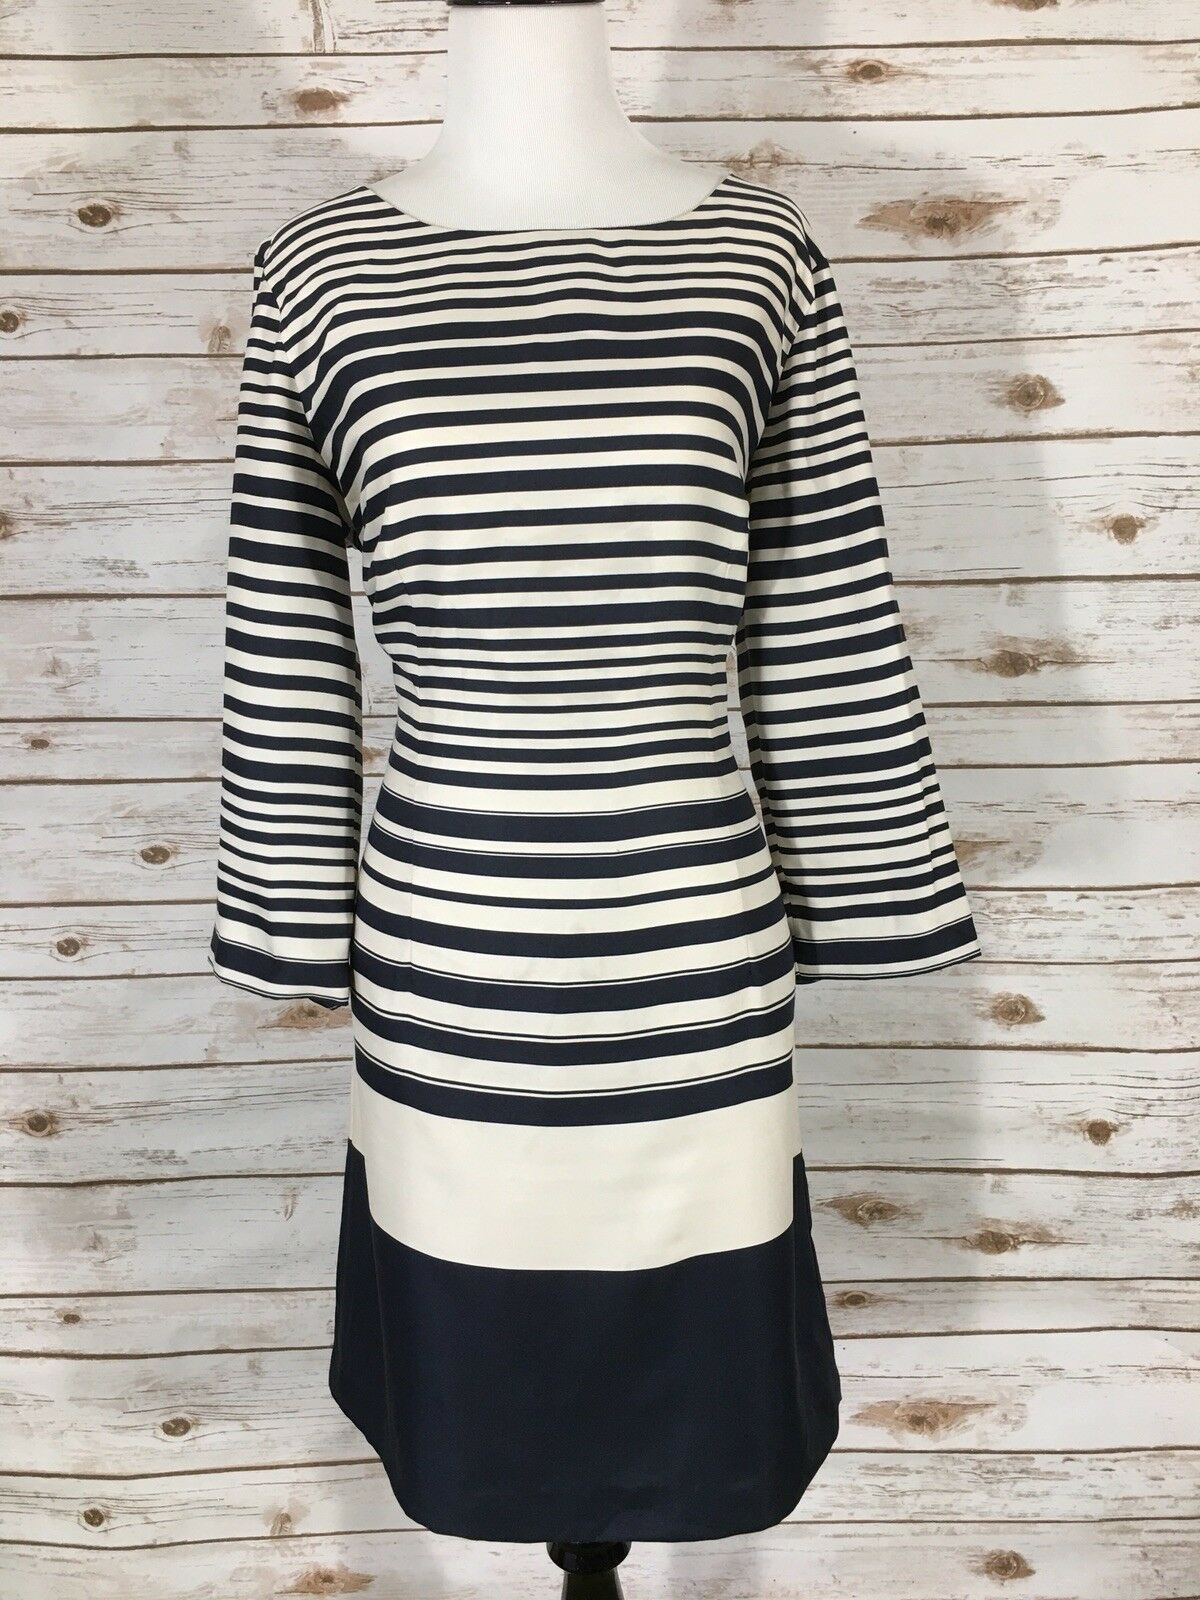 Limited 3 4 Sleeve  Dress Size 8 retail at at at  158 e7a1a2